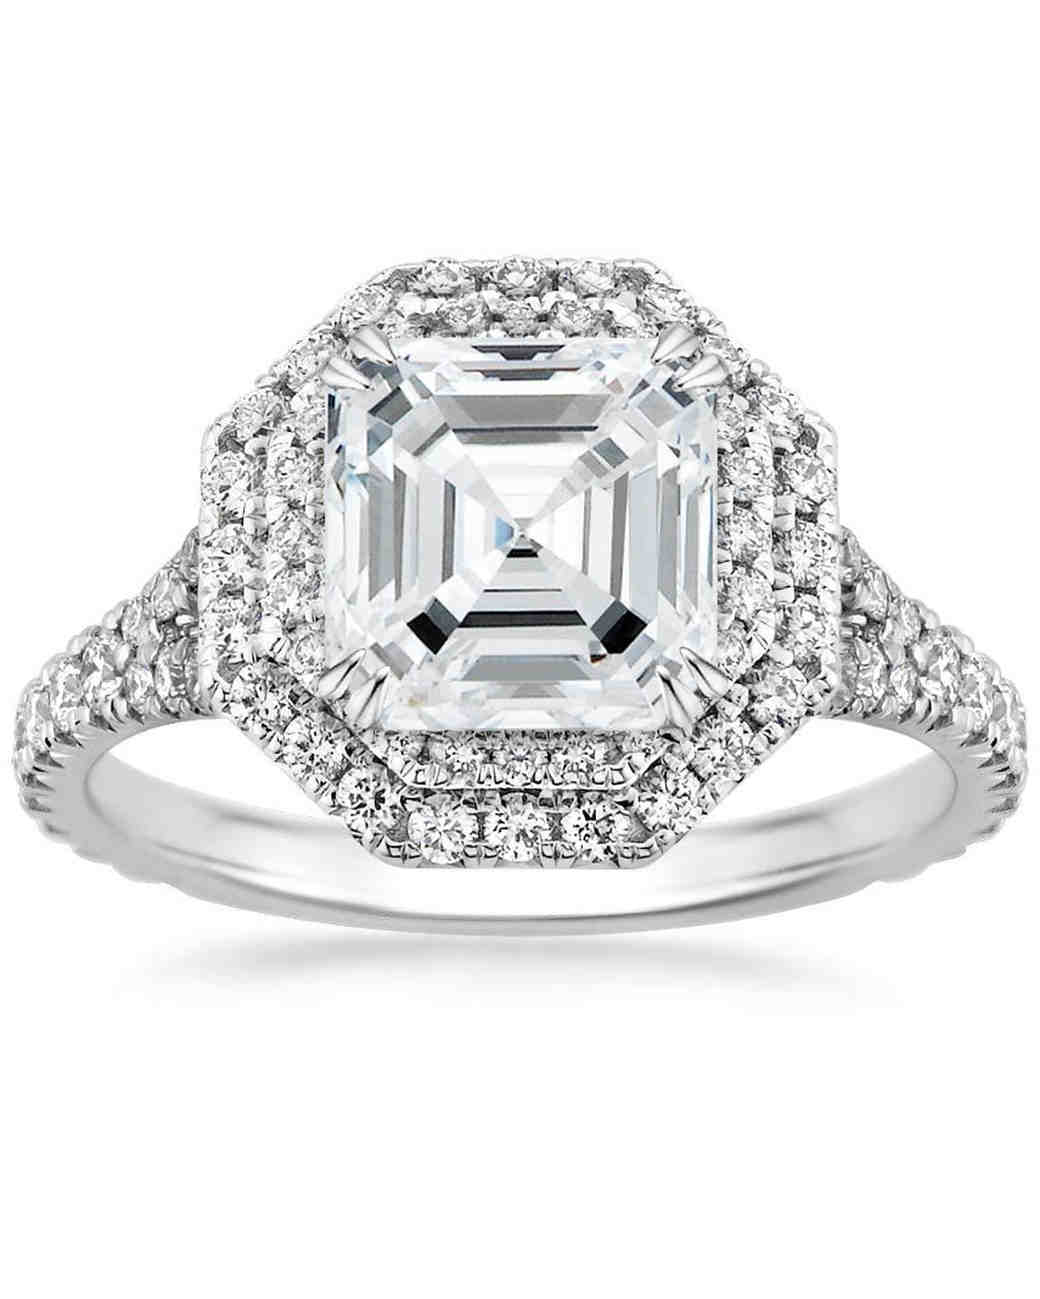 Brilliant Earth Asscher-Cut Platinum Roslin Diamond Engagement Ring